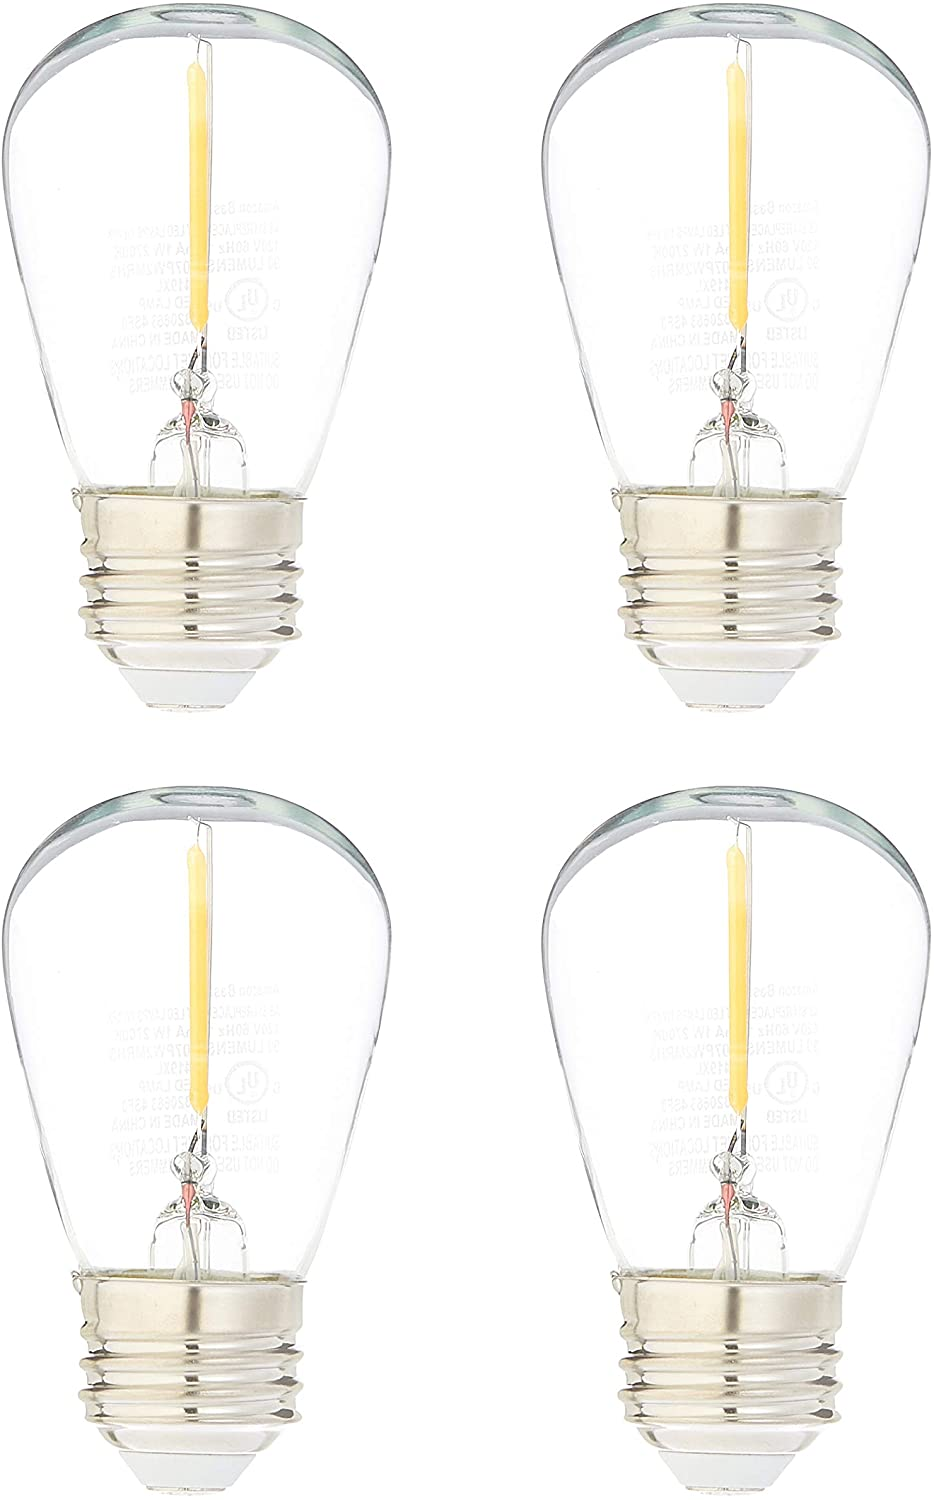 Amazon Basics Replacement LED String Light Edis Bulbs Ranking integrated 1st place Factory outlet S14 Shape